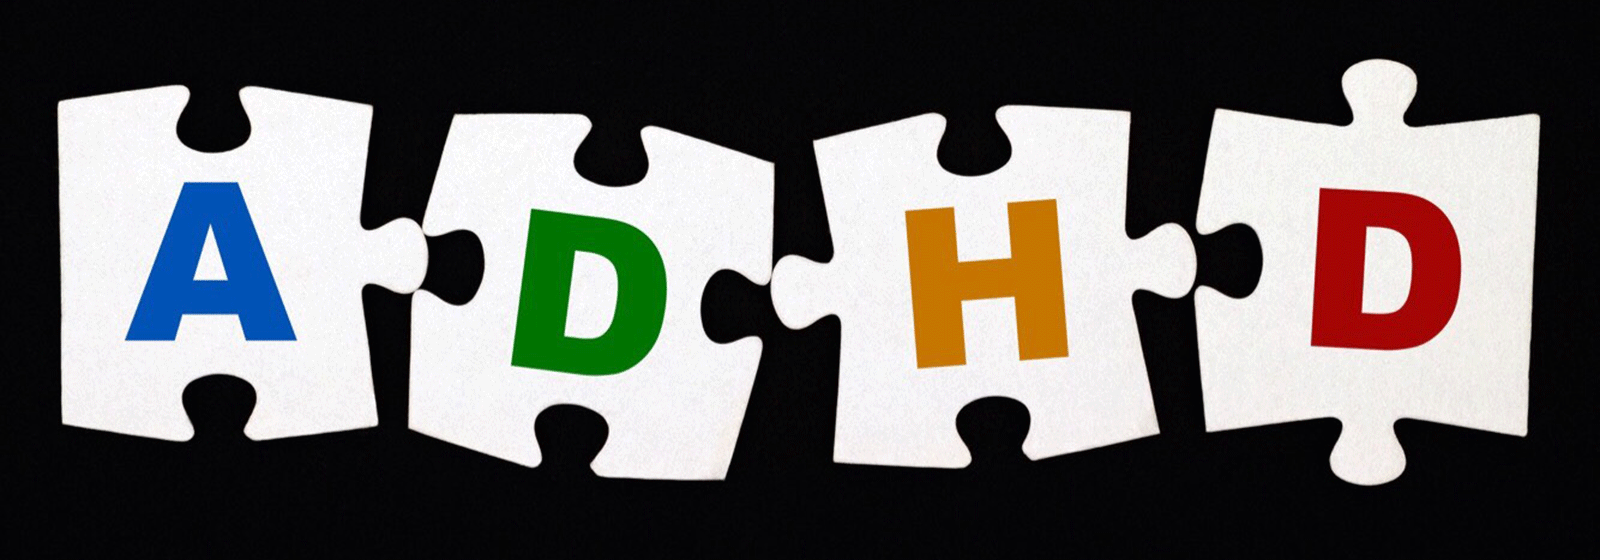 Graphic depicting four puzzles pieces with the letters A, D, H and D on them